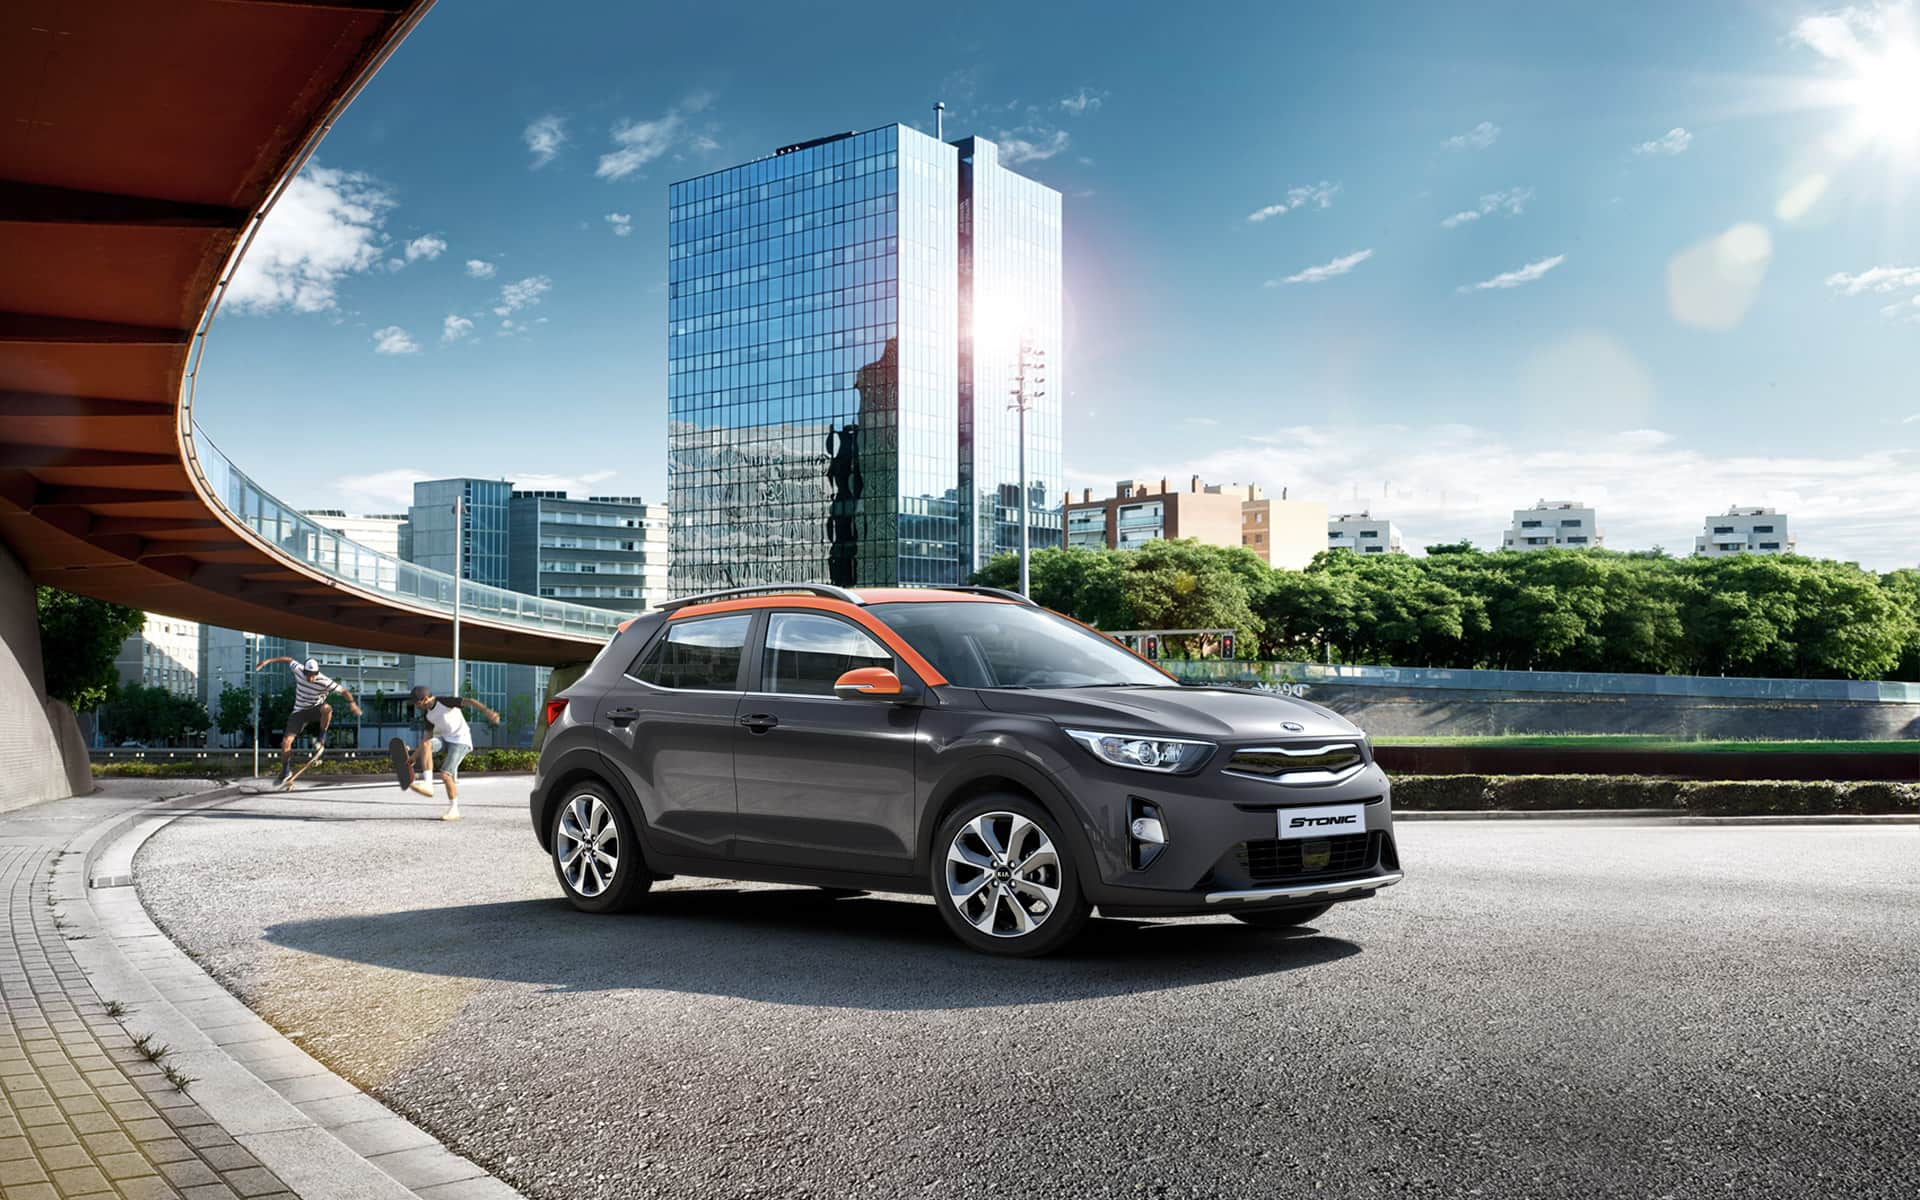 Kia Stonic sporty design